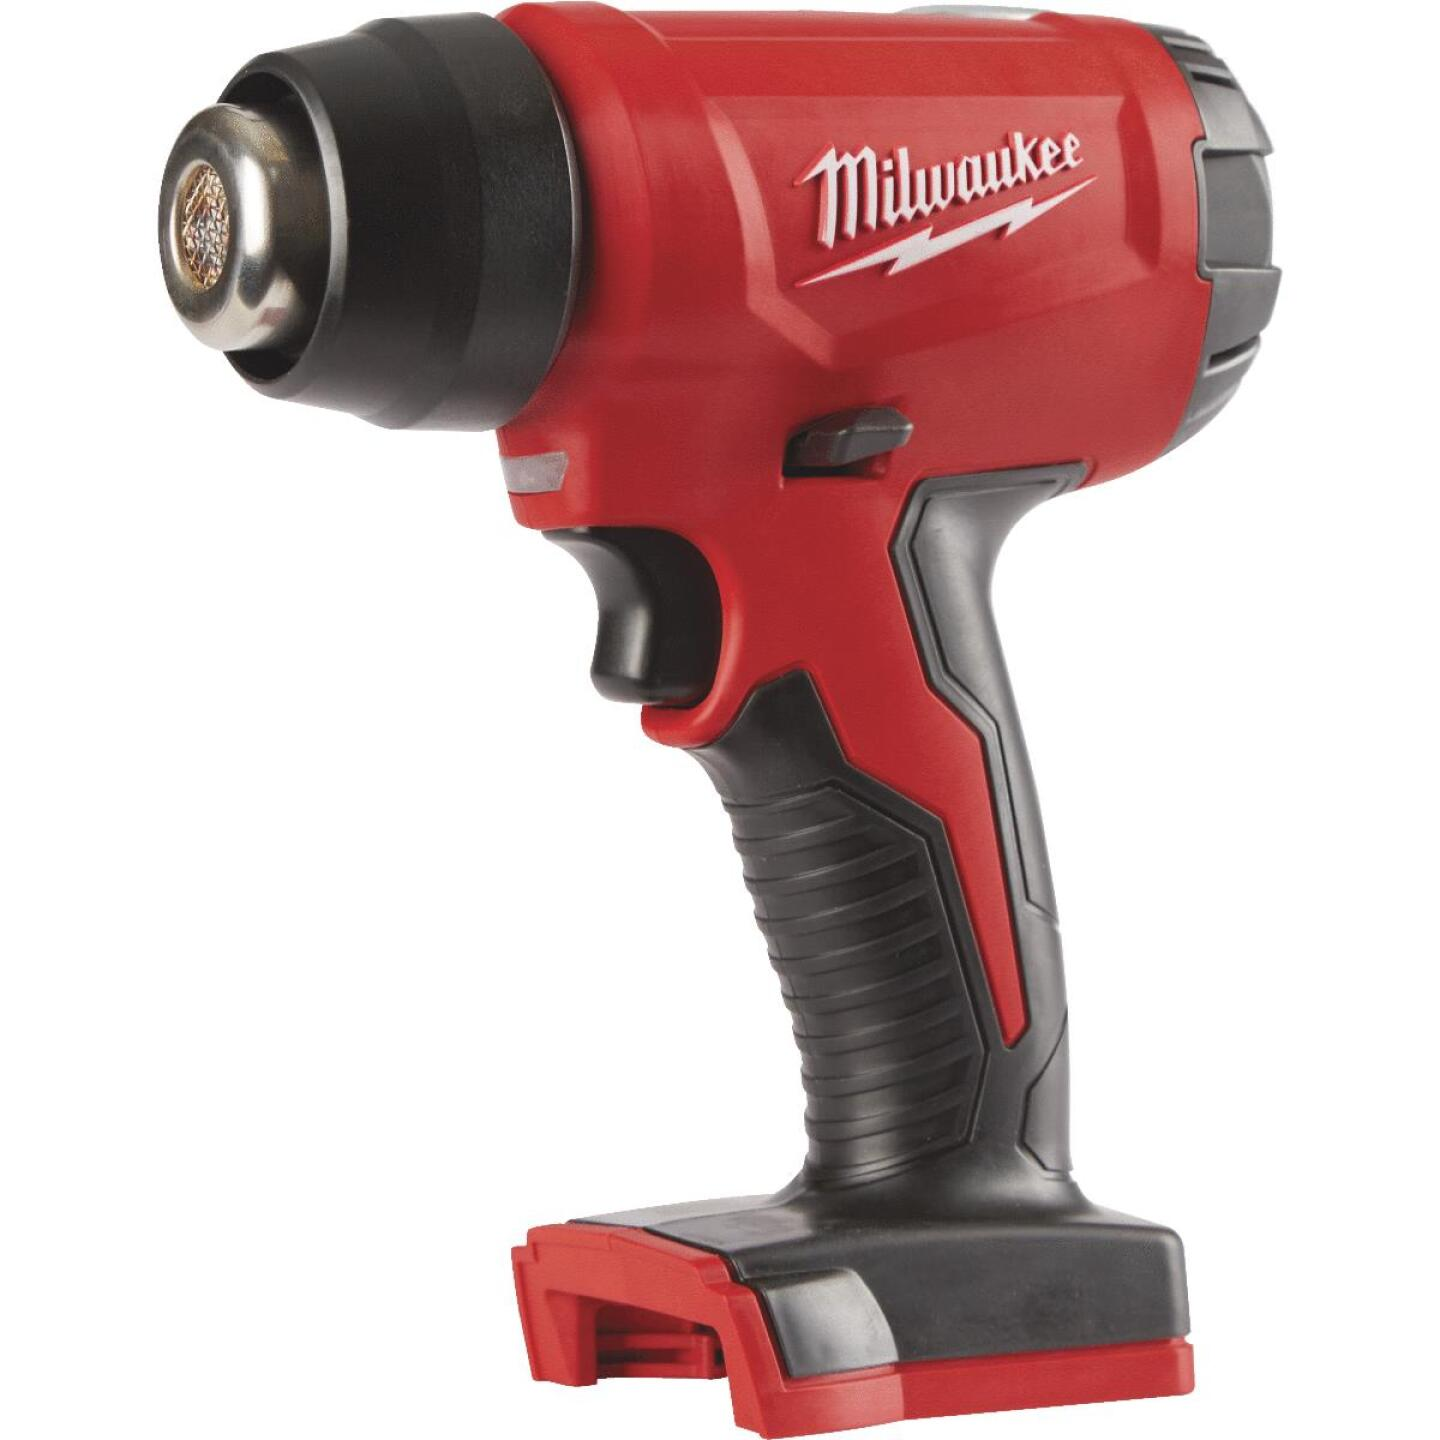 Milwaukee M18 18 Volt Lithium-Ion Compact Cordless Heat Gun (Bare Tool) Image 1